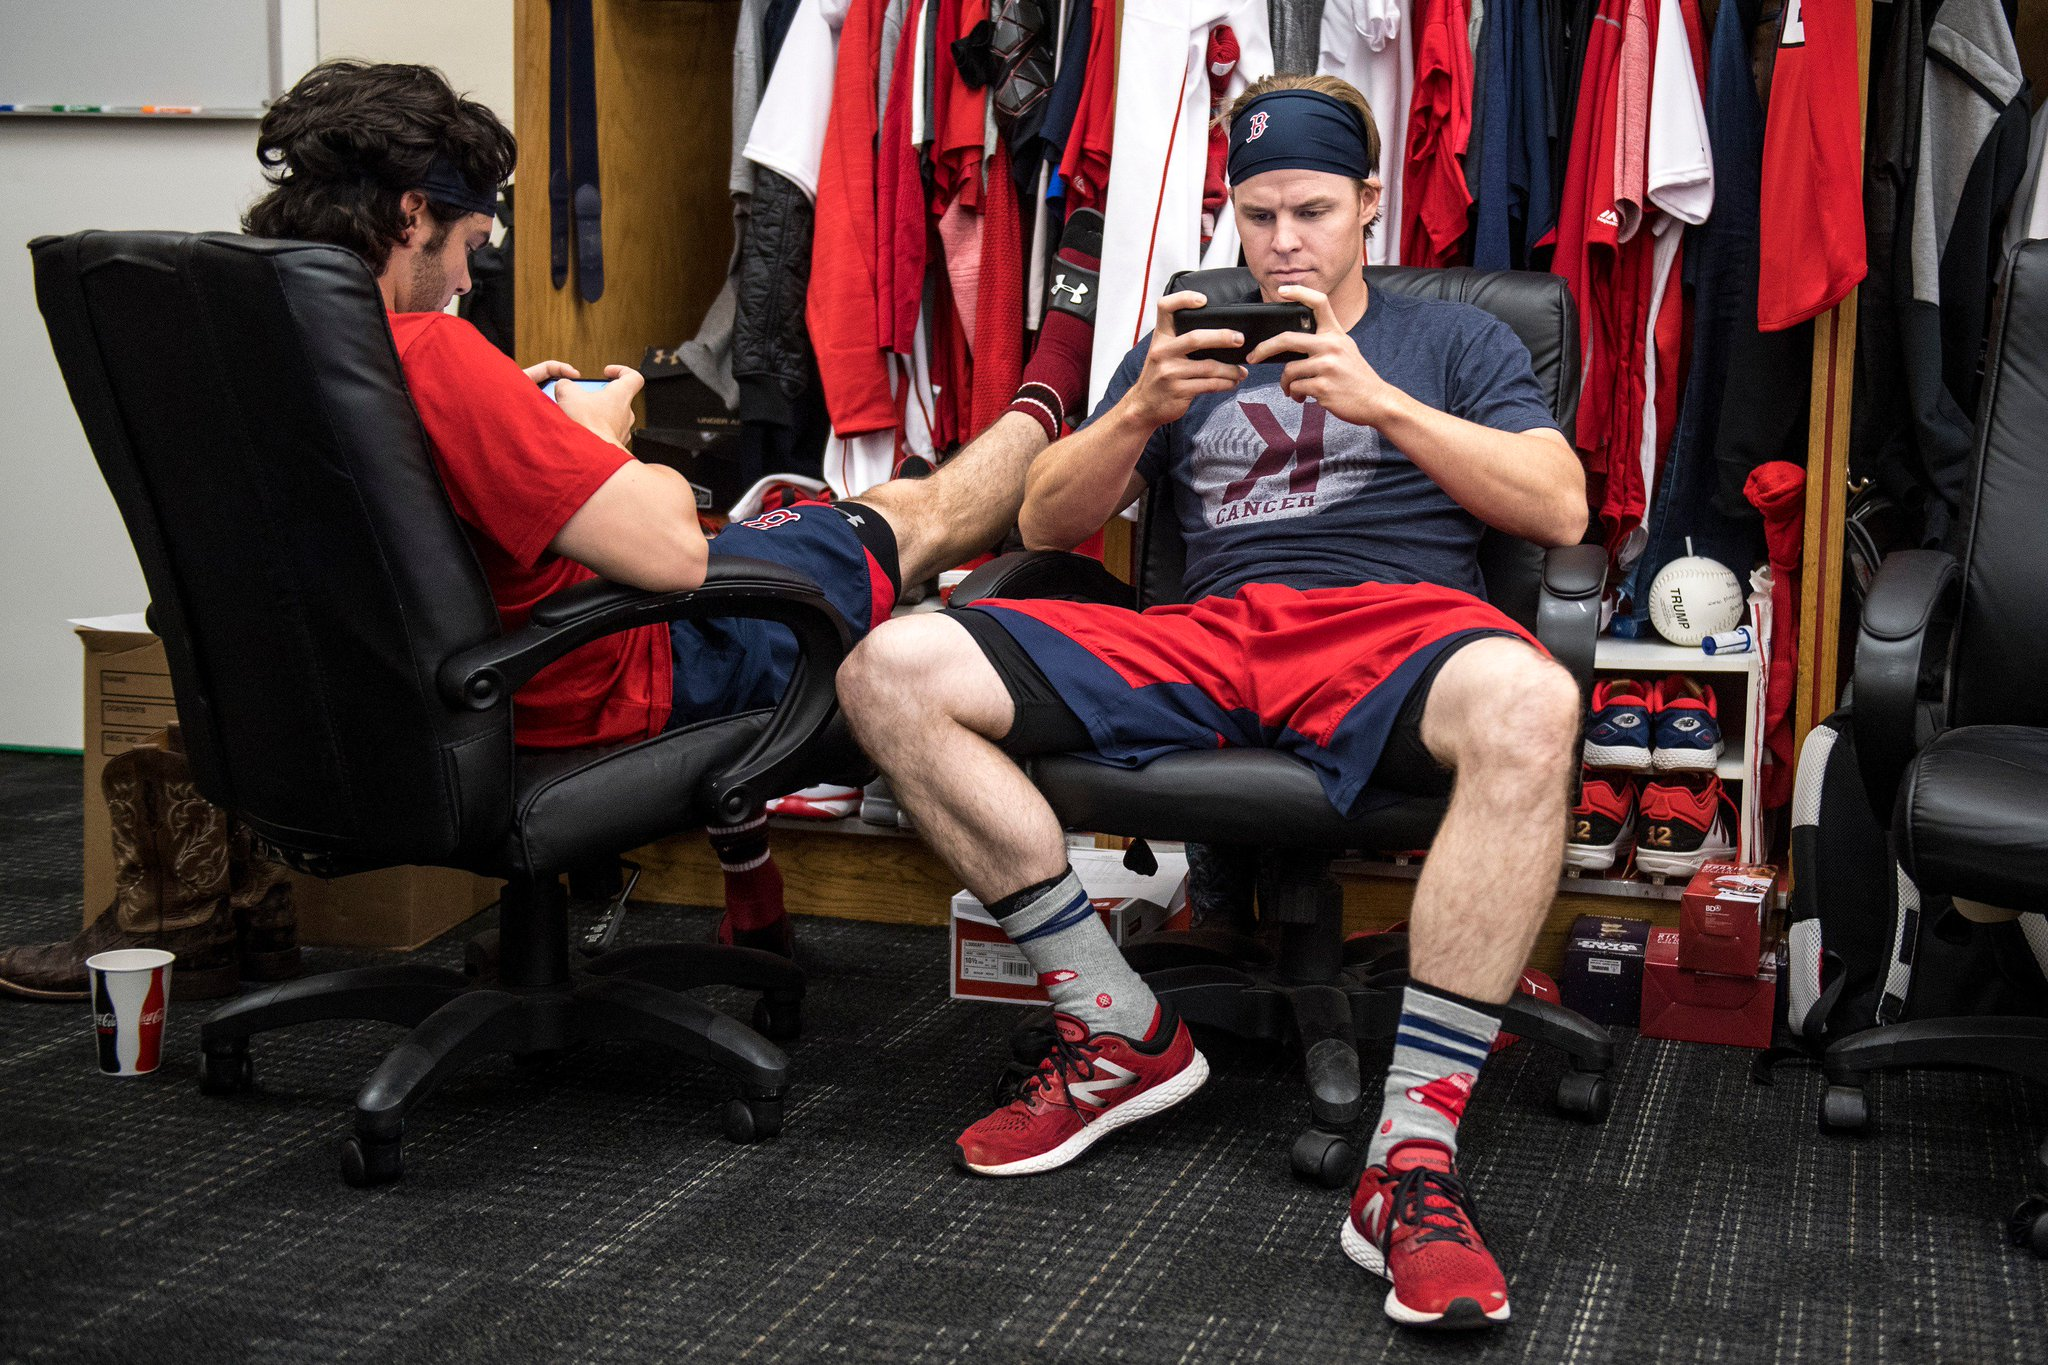 What are you doing on Twitter!? You should be on https://t.co/TNu271yiIB making @asben16 an All-Star! https://t.co/nSUvVFHKth